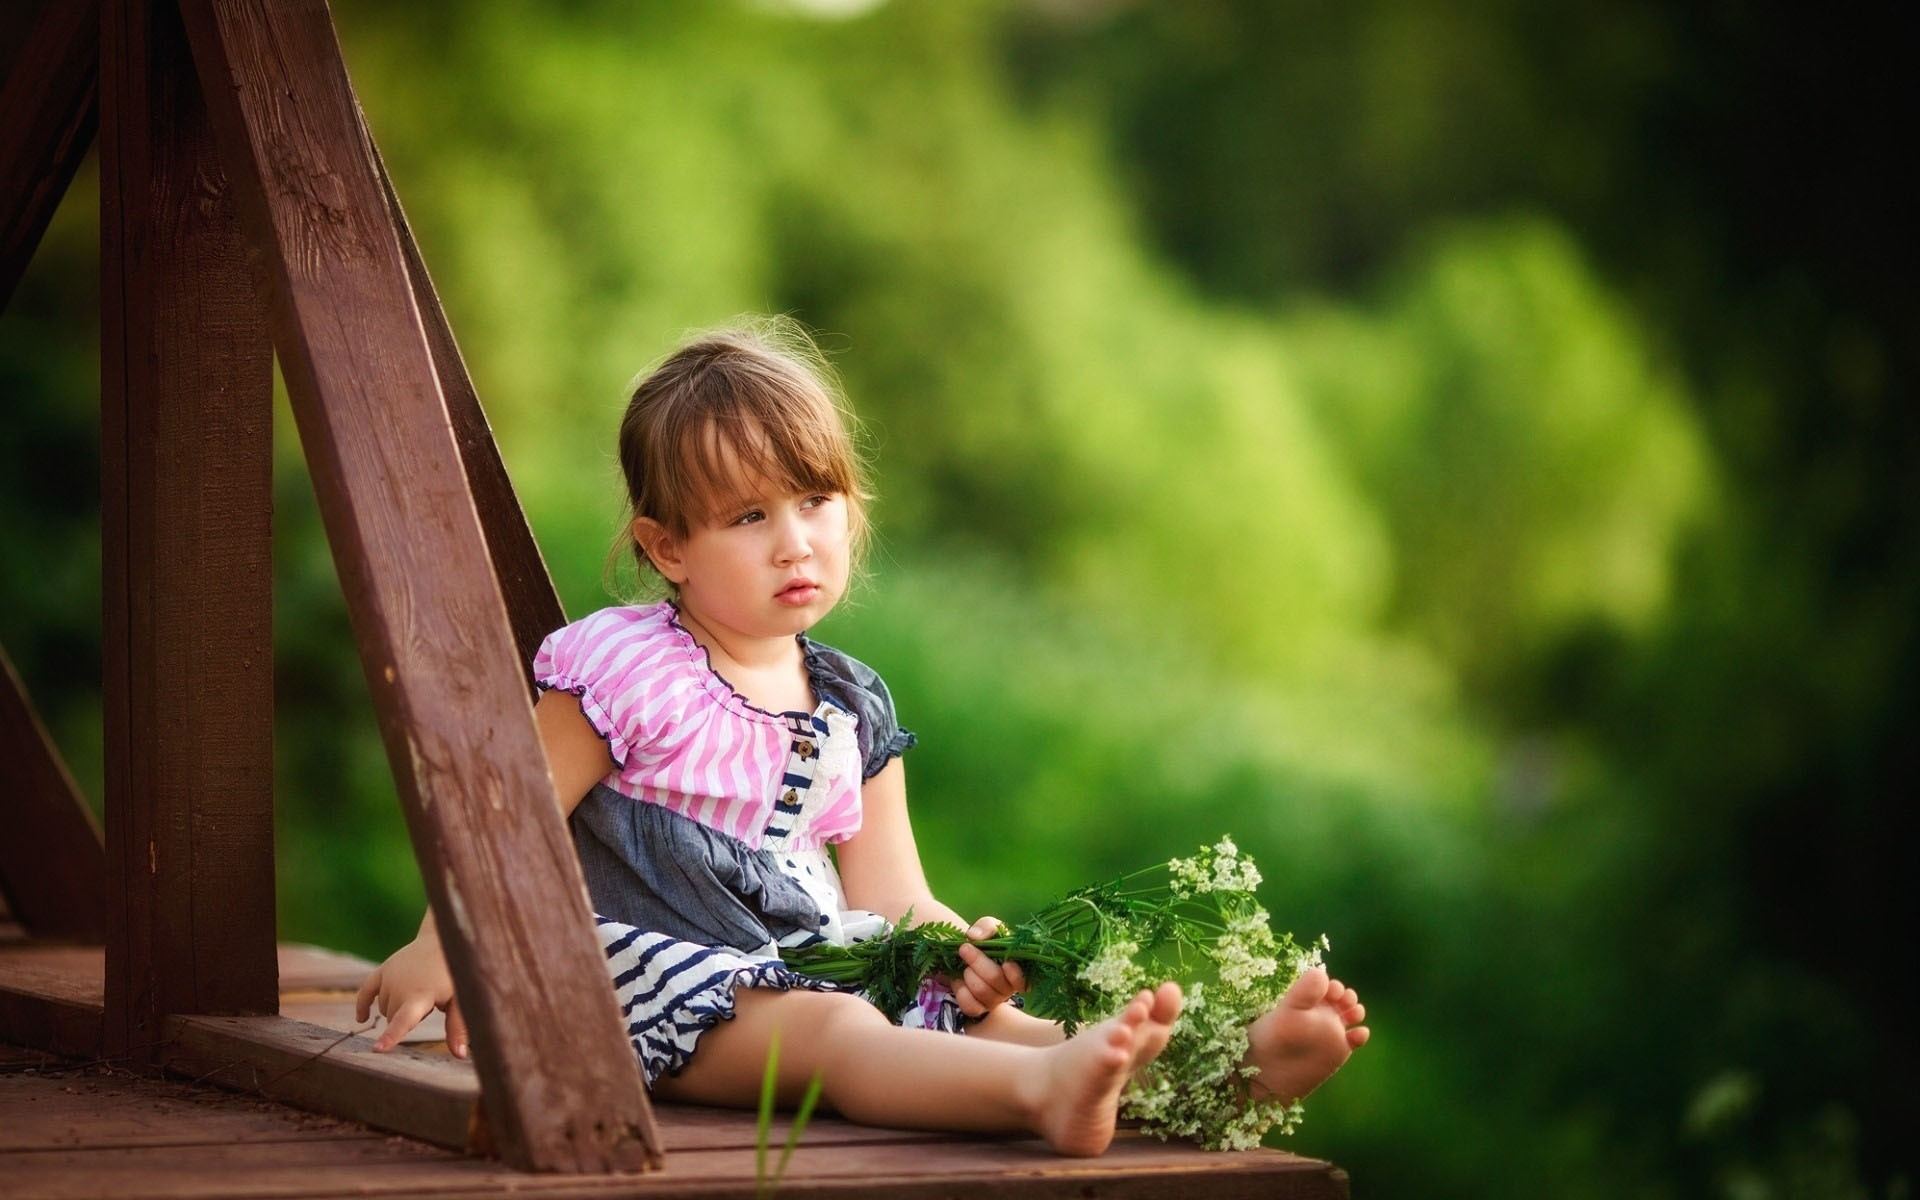 Ideas About Cute Baby Girl Wallpaper ...